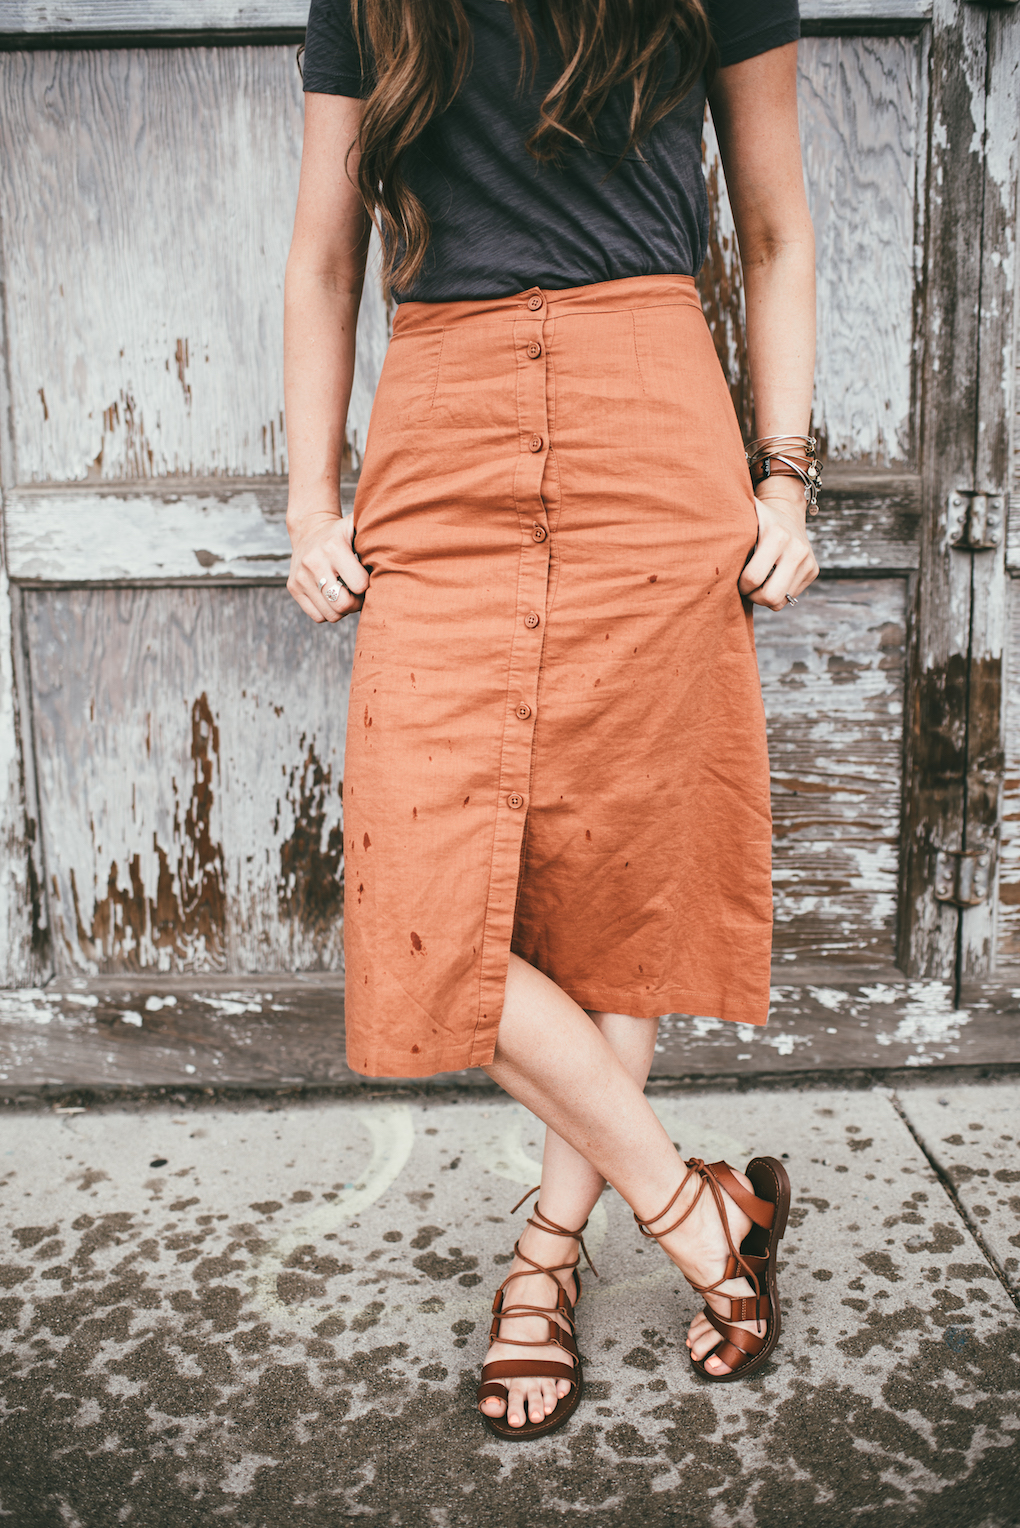 orange button up skirt paired with grey top and brown sandals